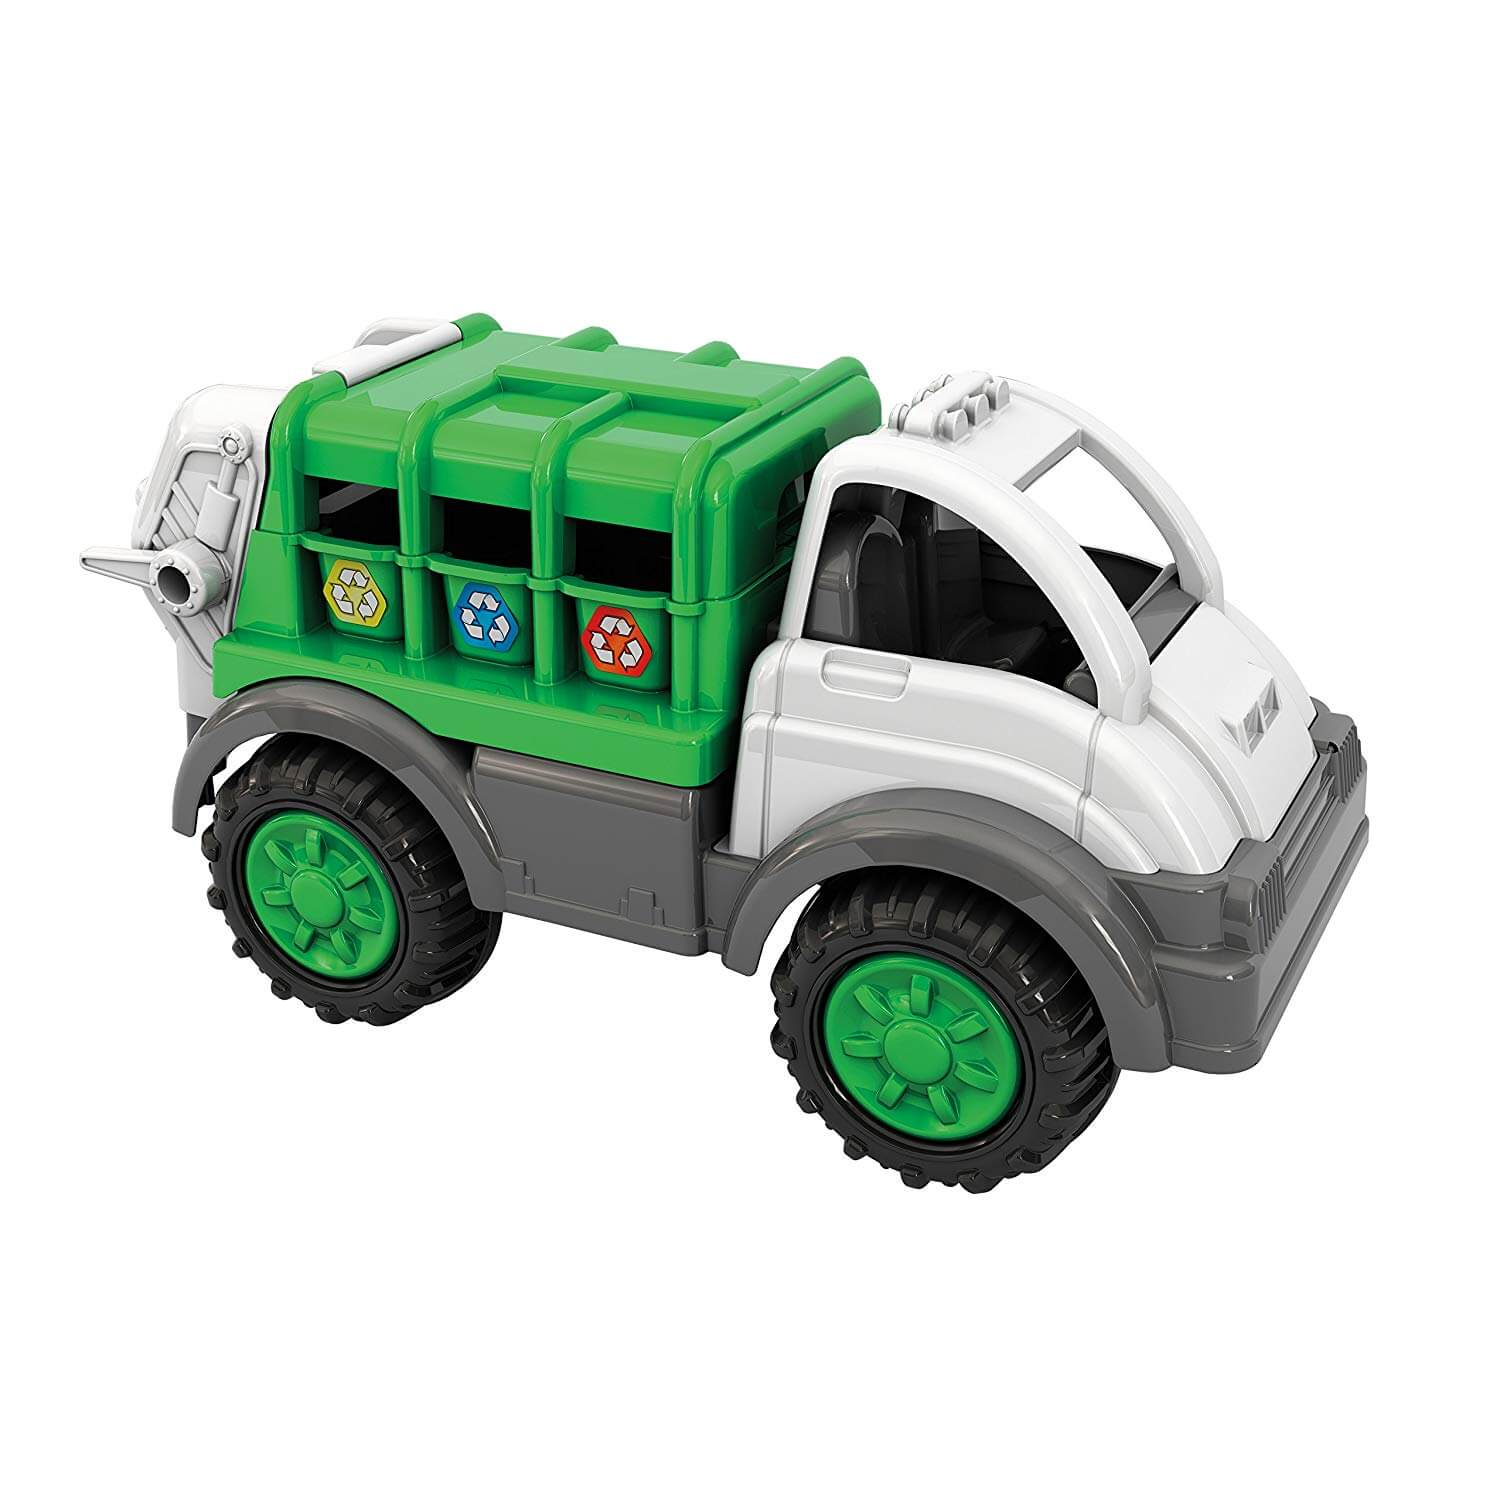 American Plastic Toys Recycling Truck